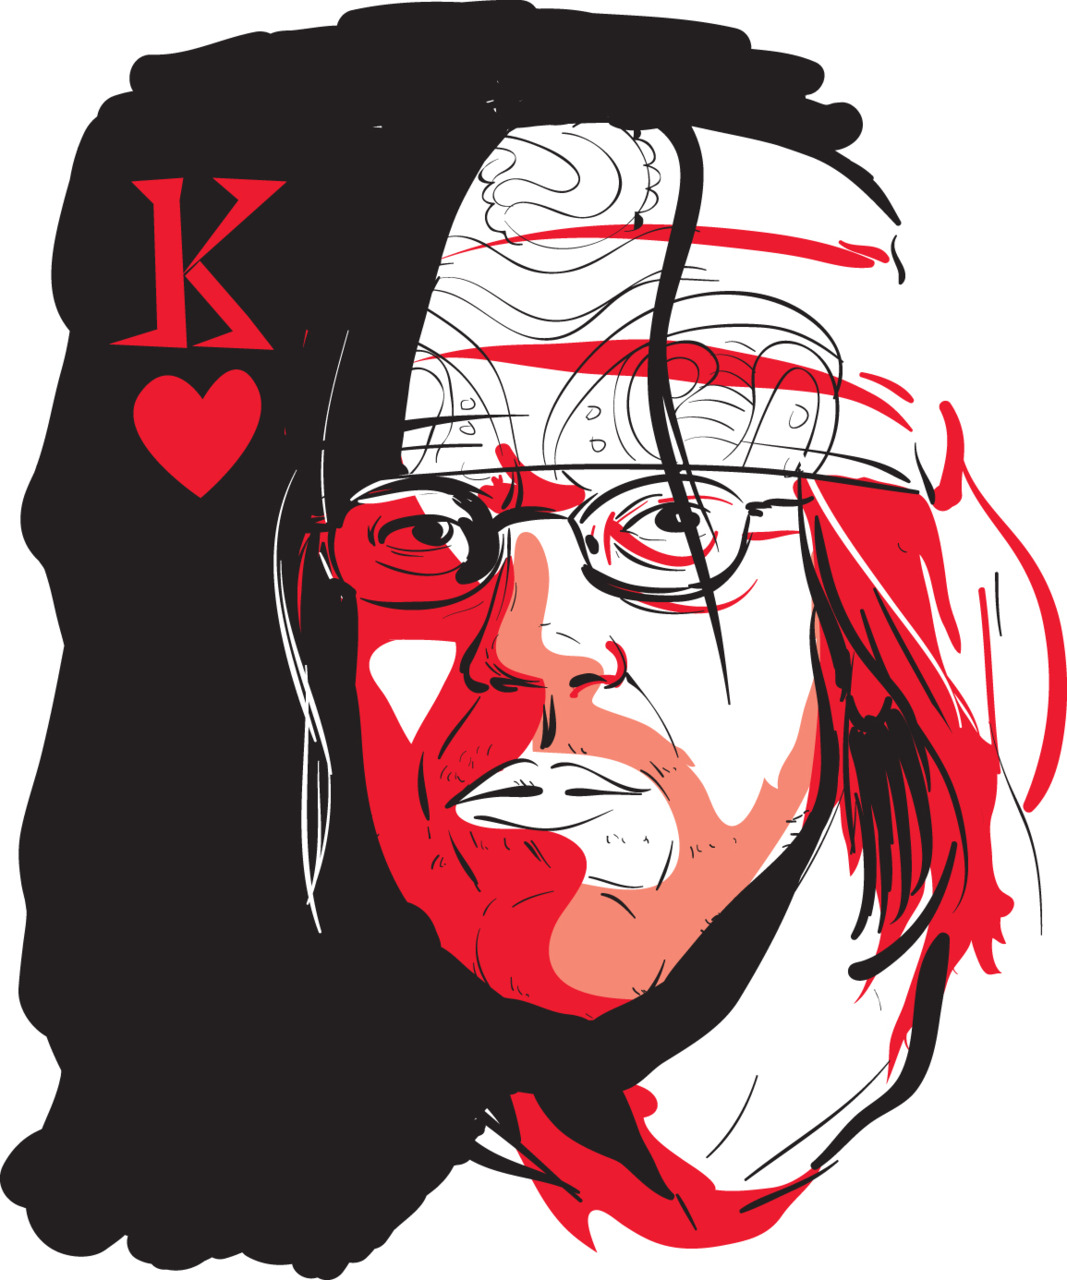 short essays by david foster wallace Just asking most popular the david foster wallace is the author of several books the reaction since the government shutdown ended has been nothing short of.